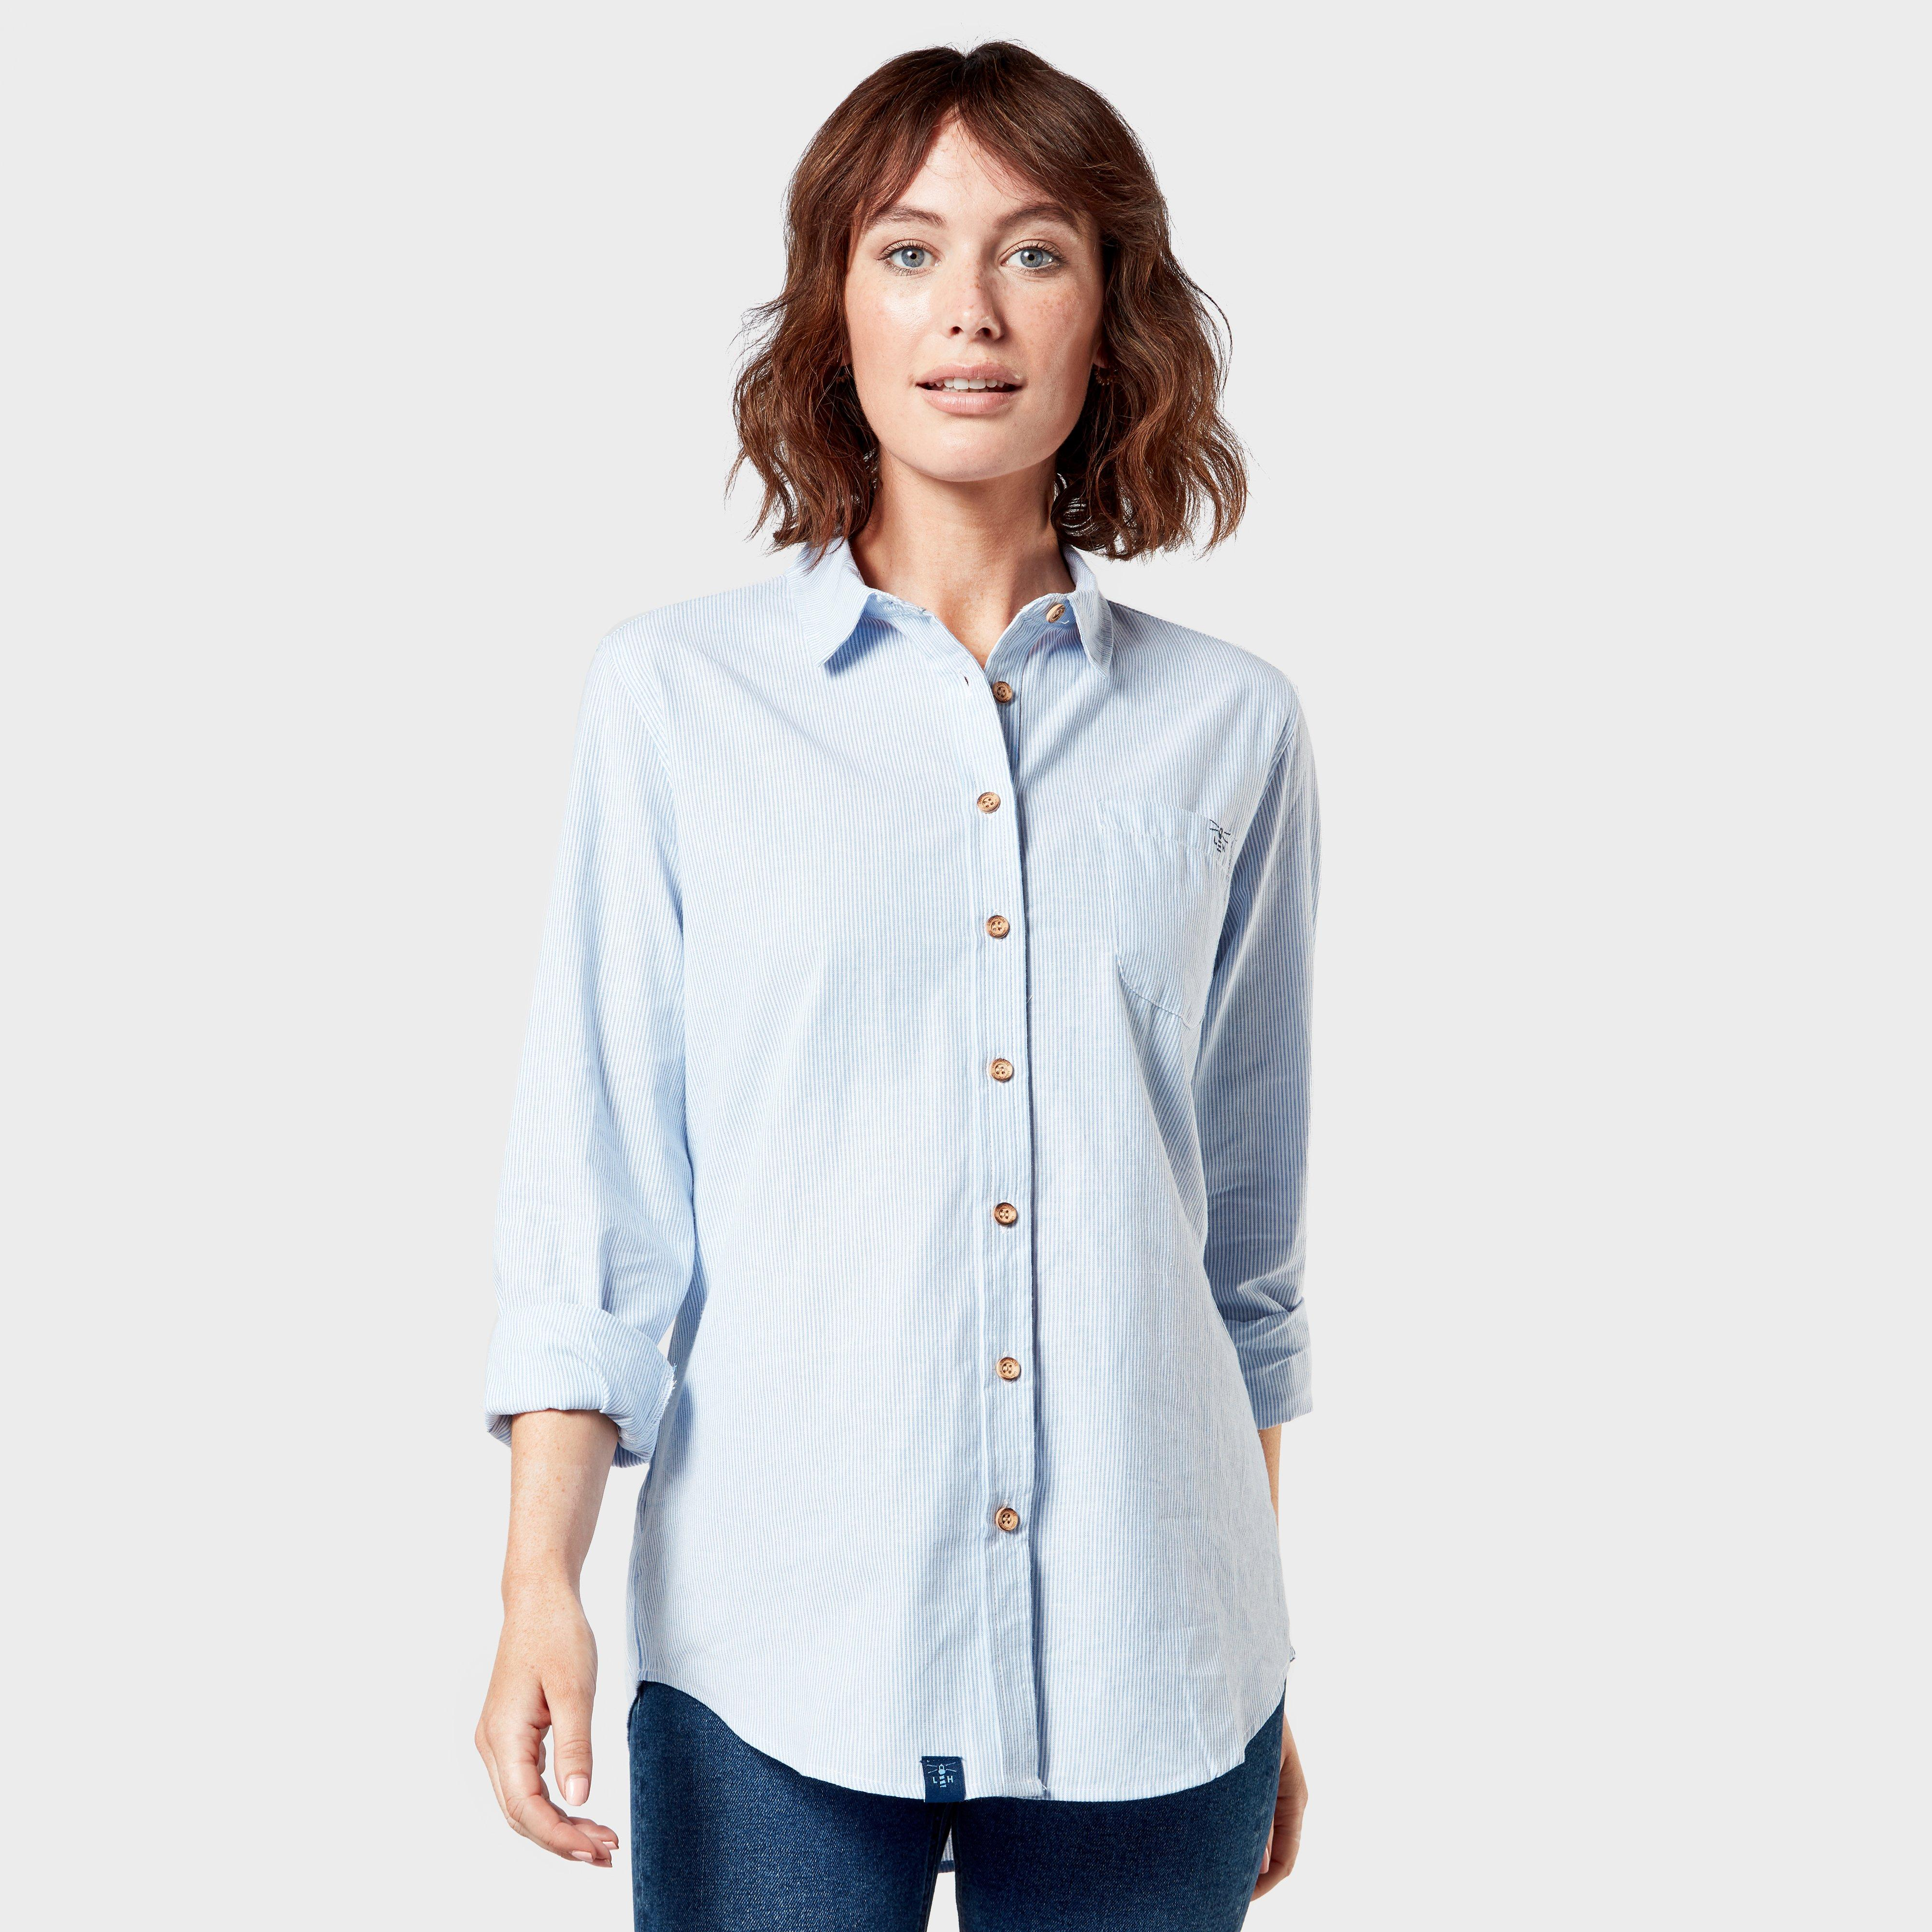 Lighthouse Women's Ocean Shirt, Blue